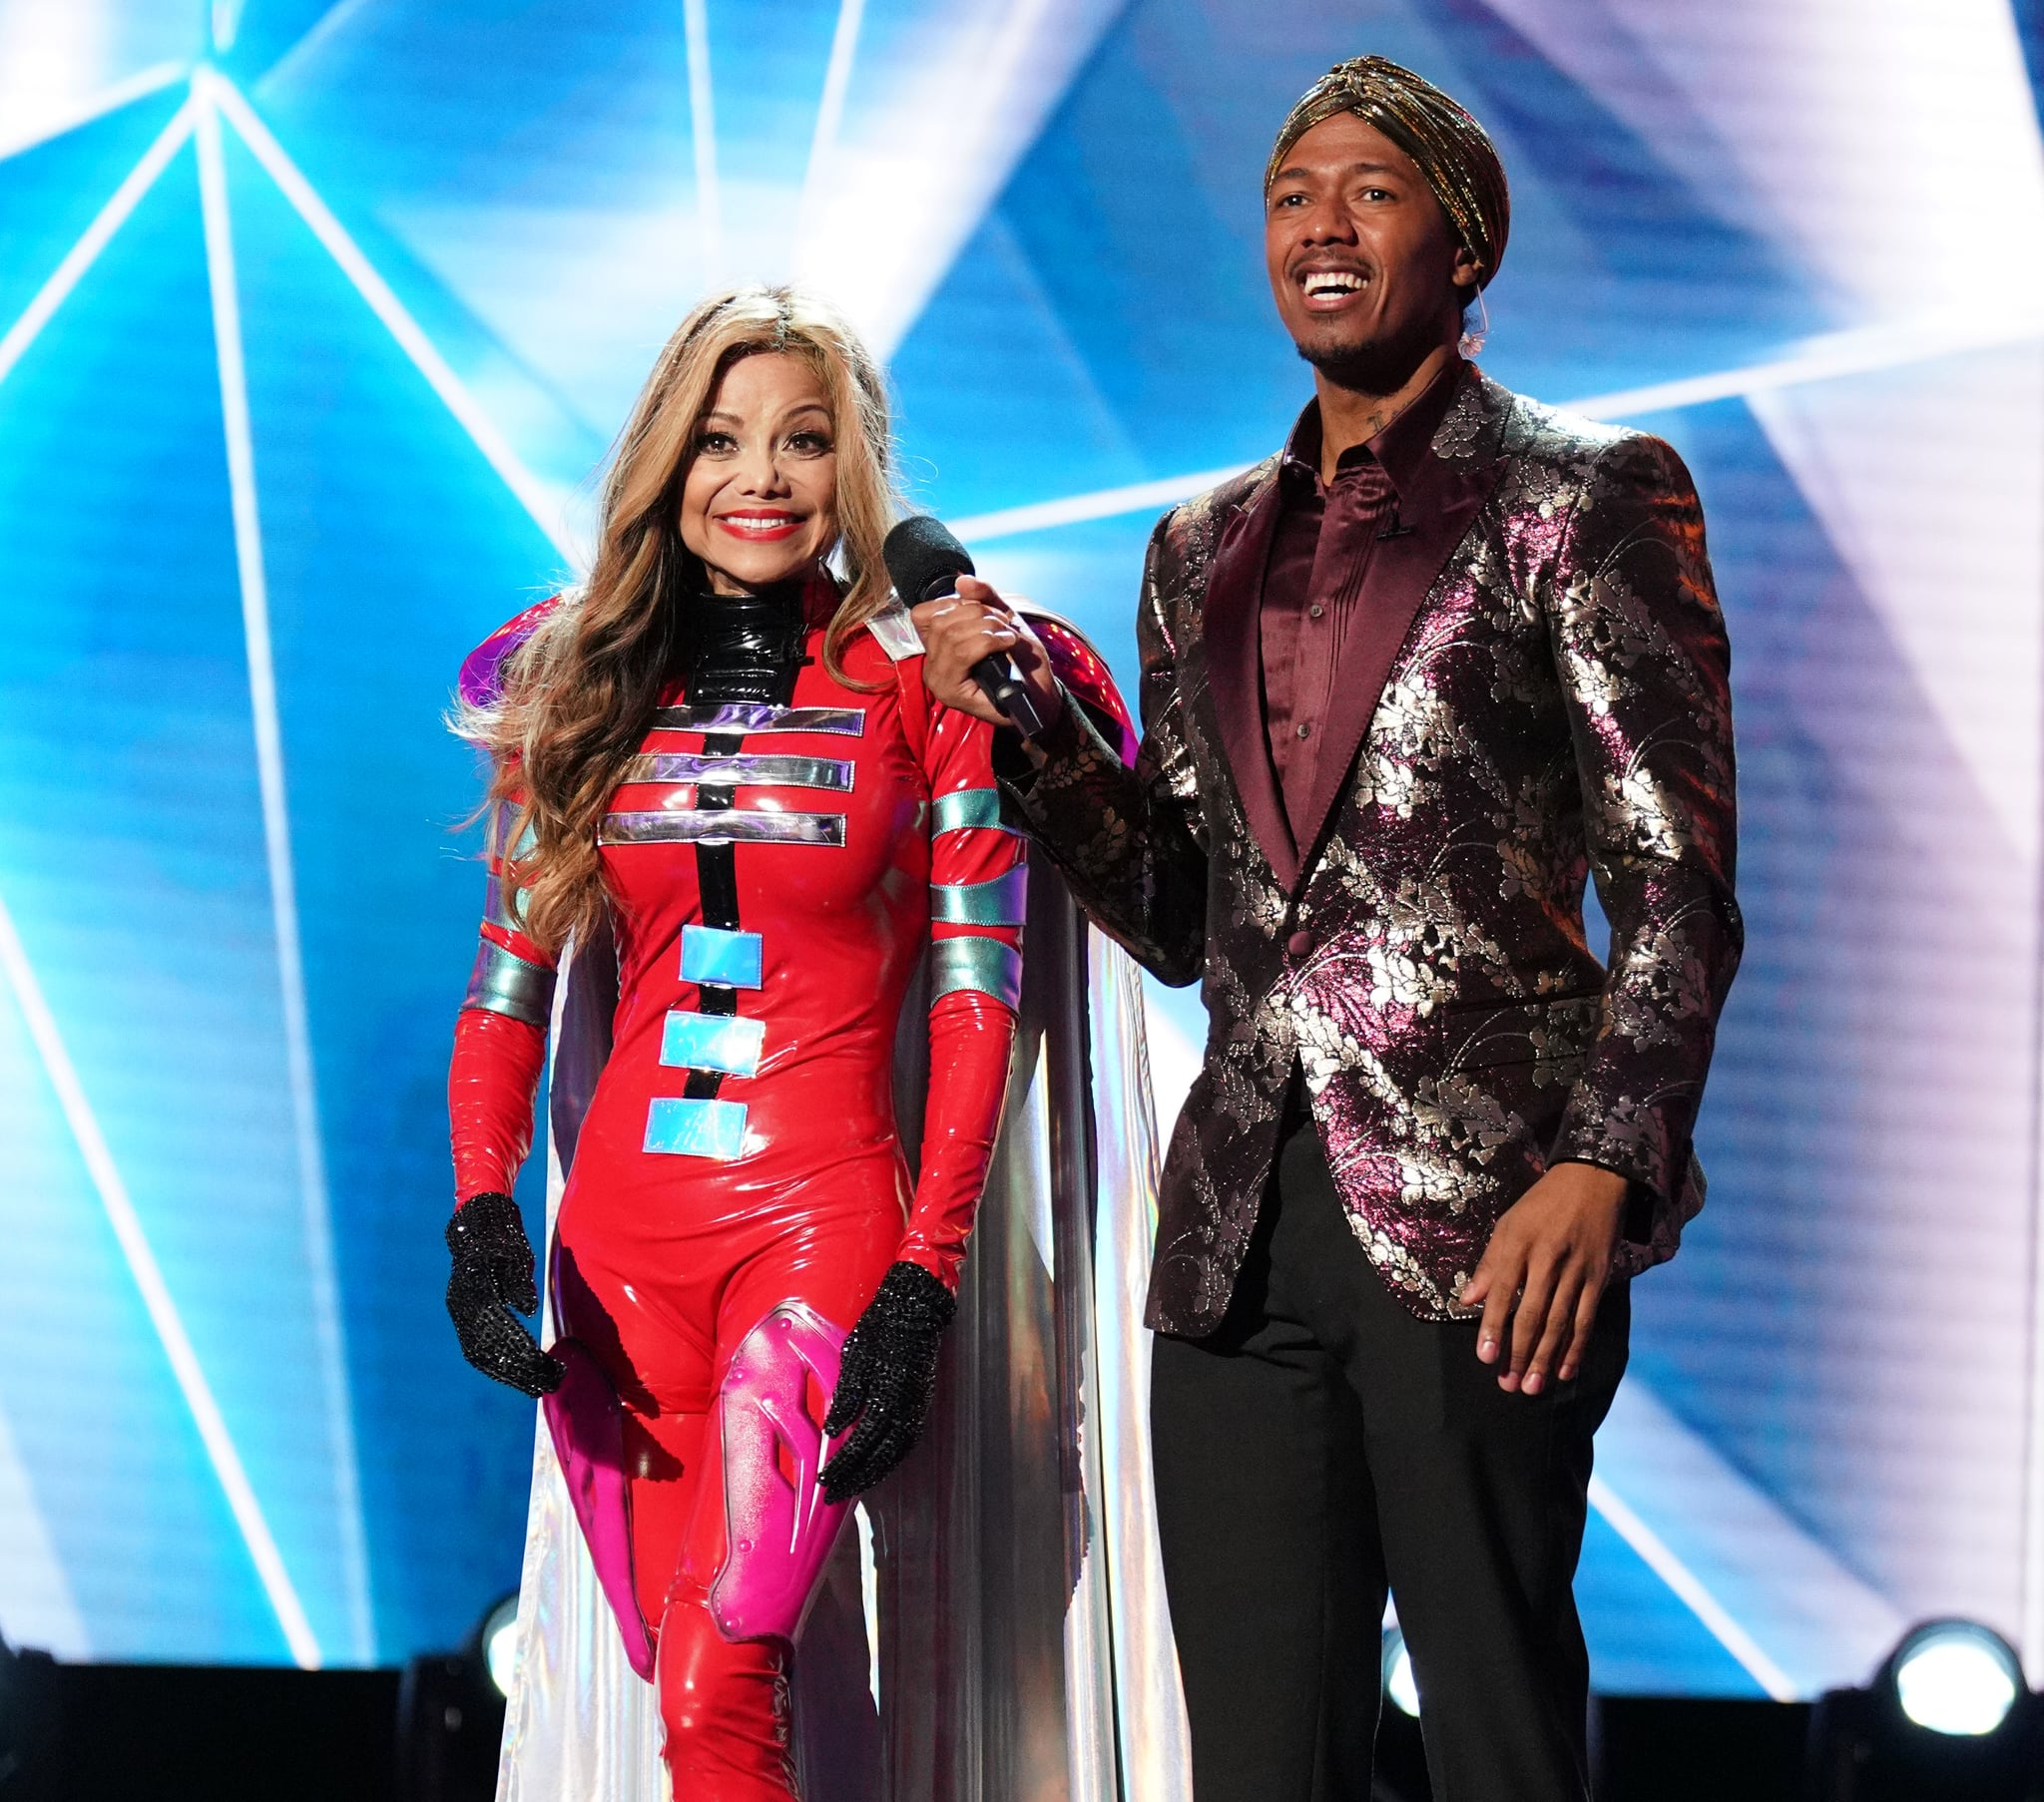 THE MASKED SINGER: L-R: La Toya Jackson and   host Nick Cannon in the